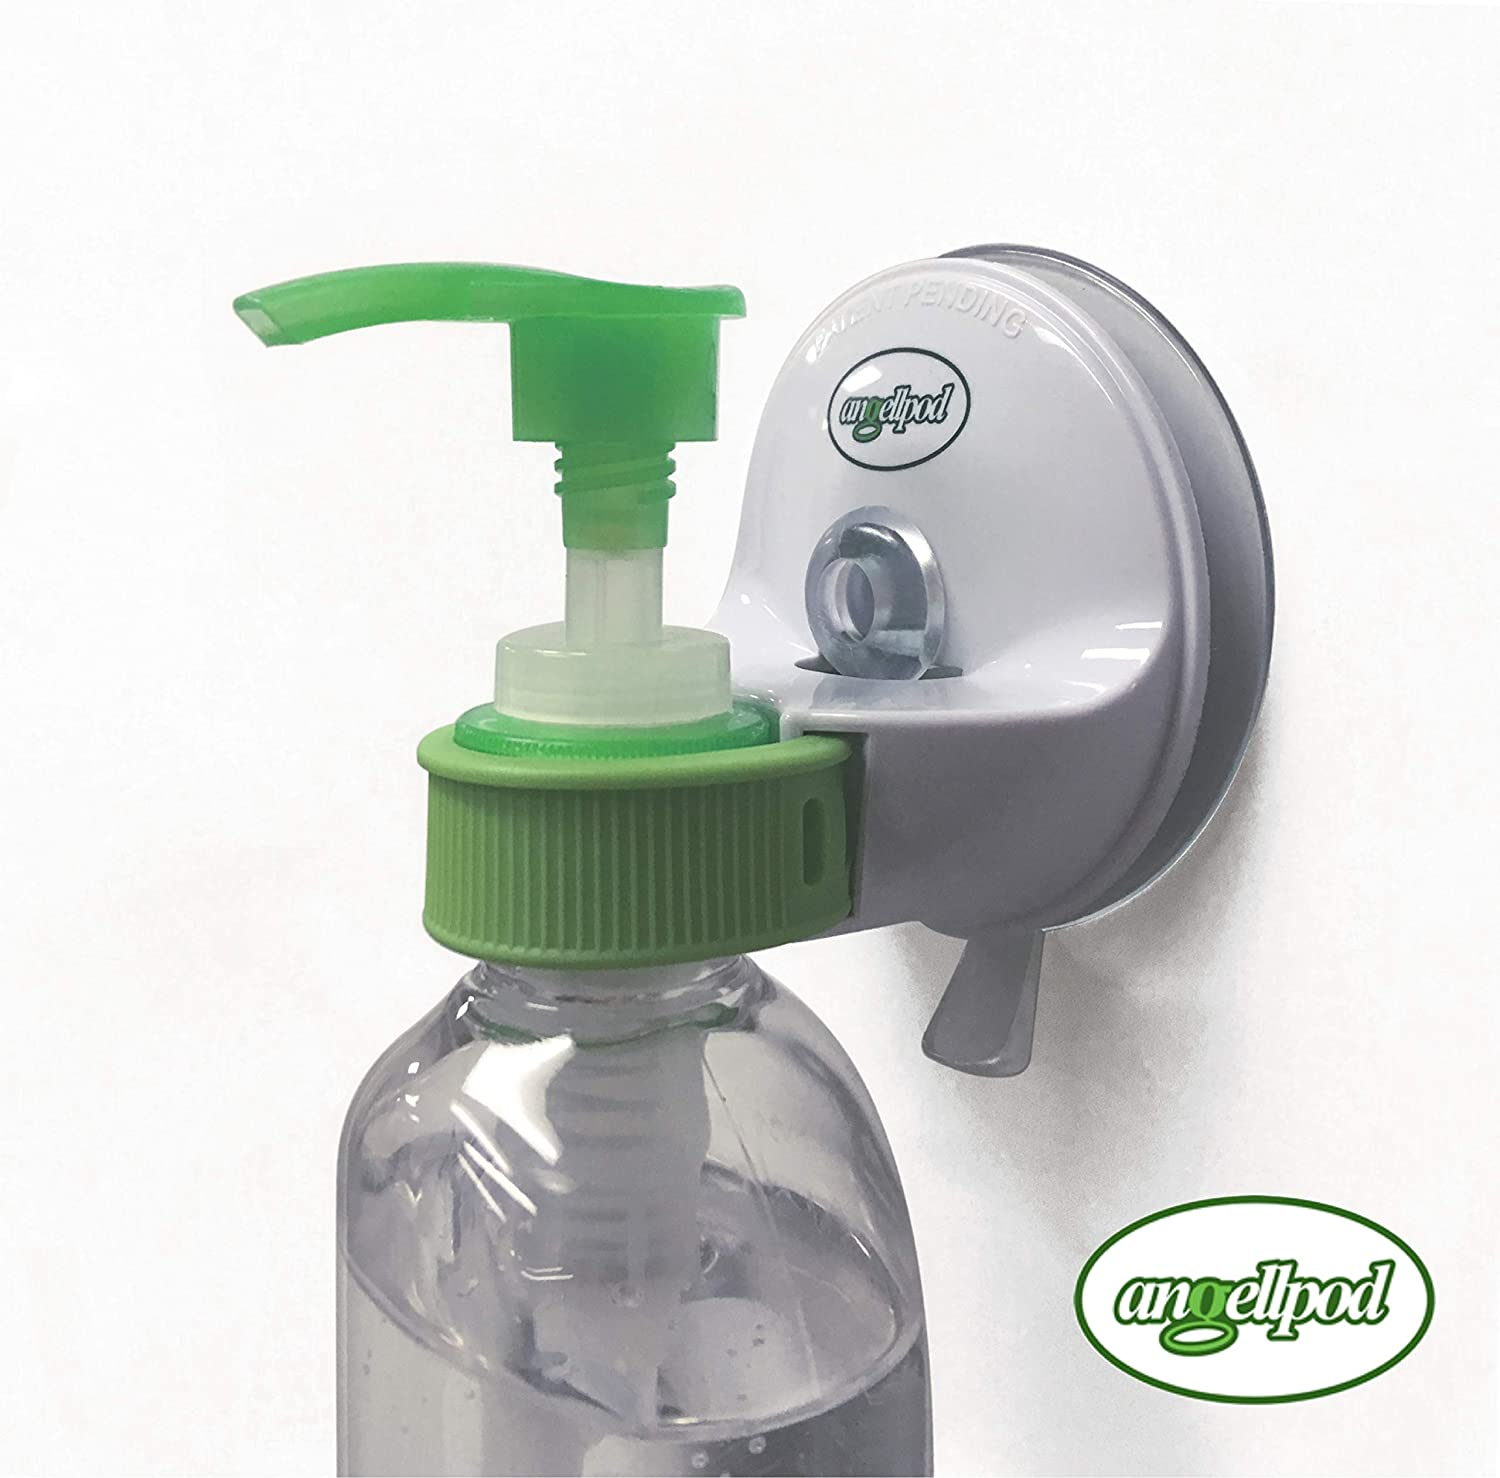 AngellPod Adjustable, Place Anywhere Hand Sanitiser Holder, Wall Mounted Pump Bottle Holder. Hand sanitiser Holder, soap dispensor Holder. Suction Cup REPOSITIONS & Self-Adhesive Sticks Anywhere!